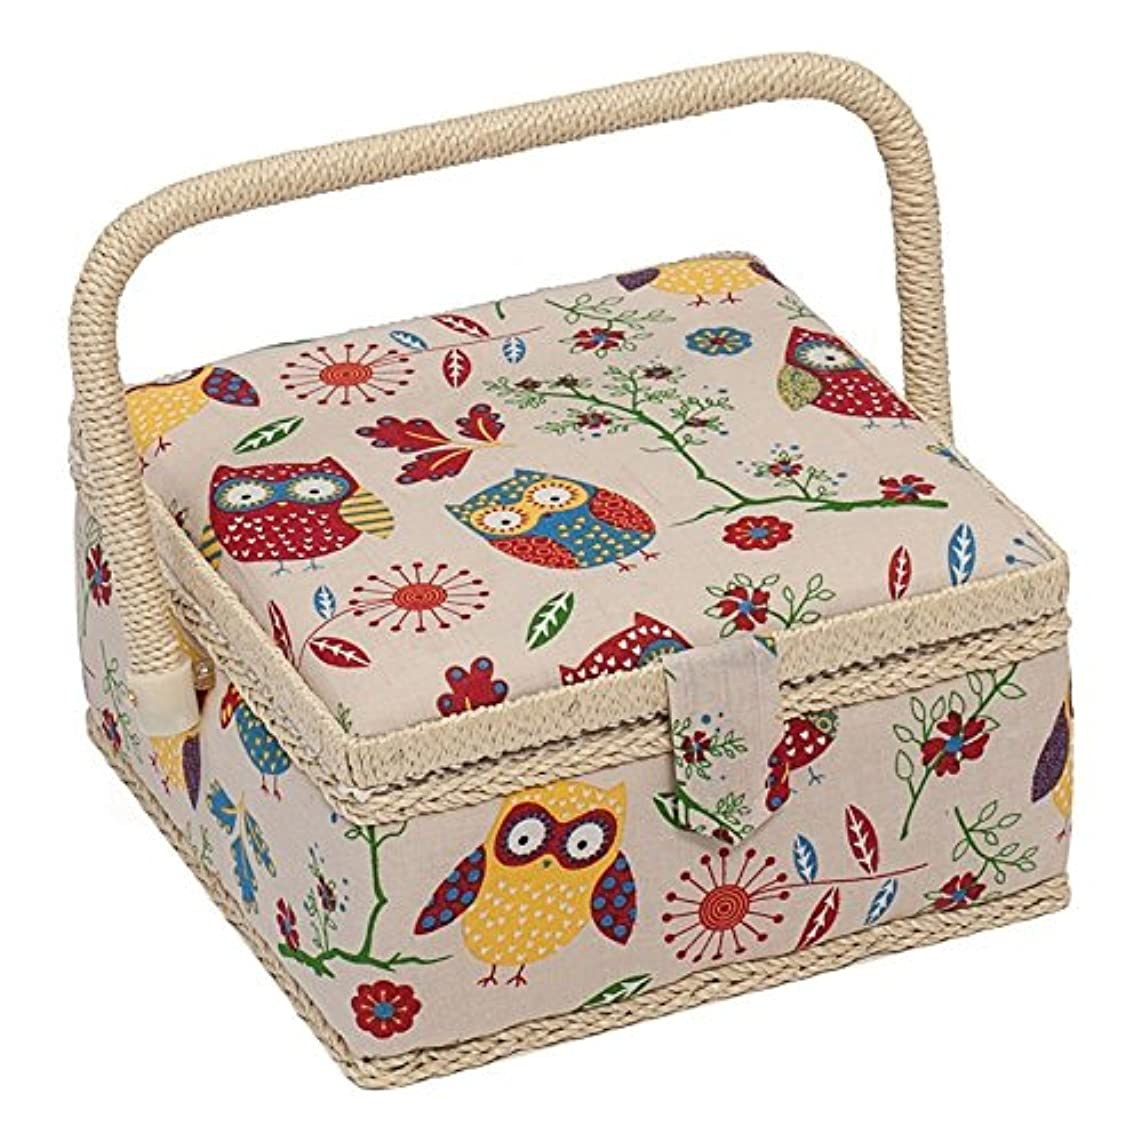 Hobby Gift Owl Design Sewing Box on Natural Small (20 x 20 x 11cm)